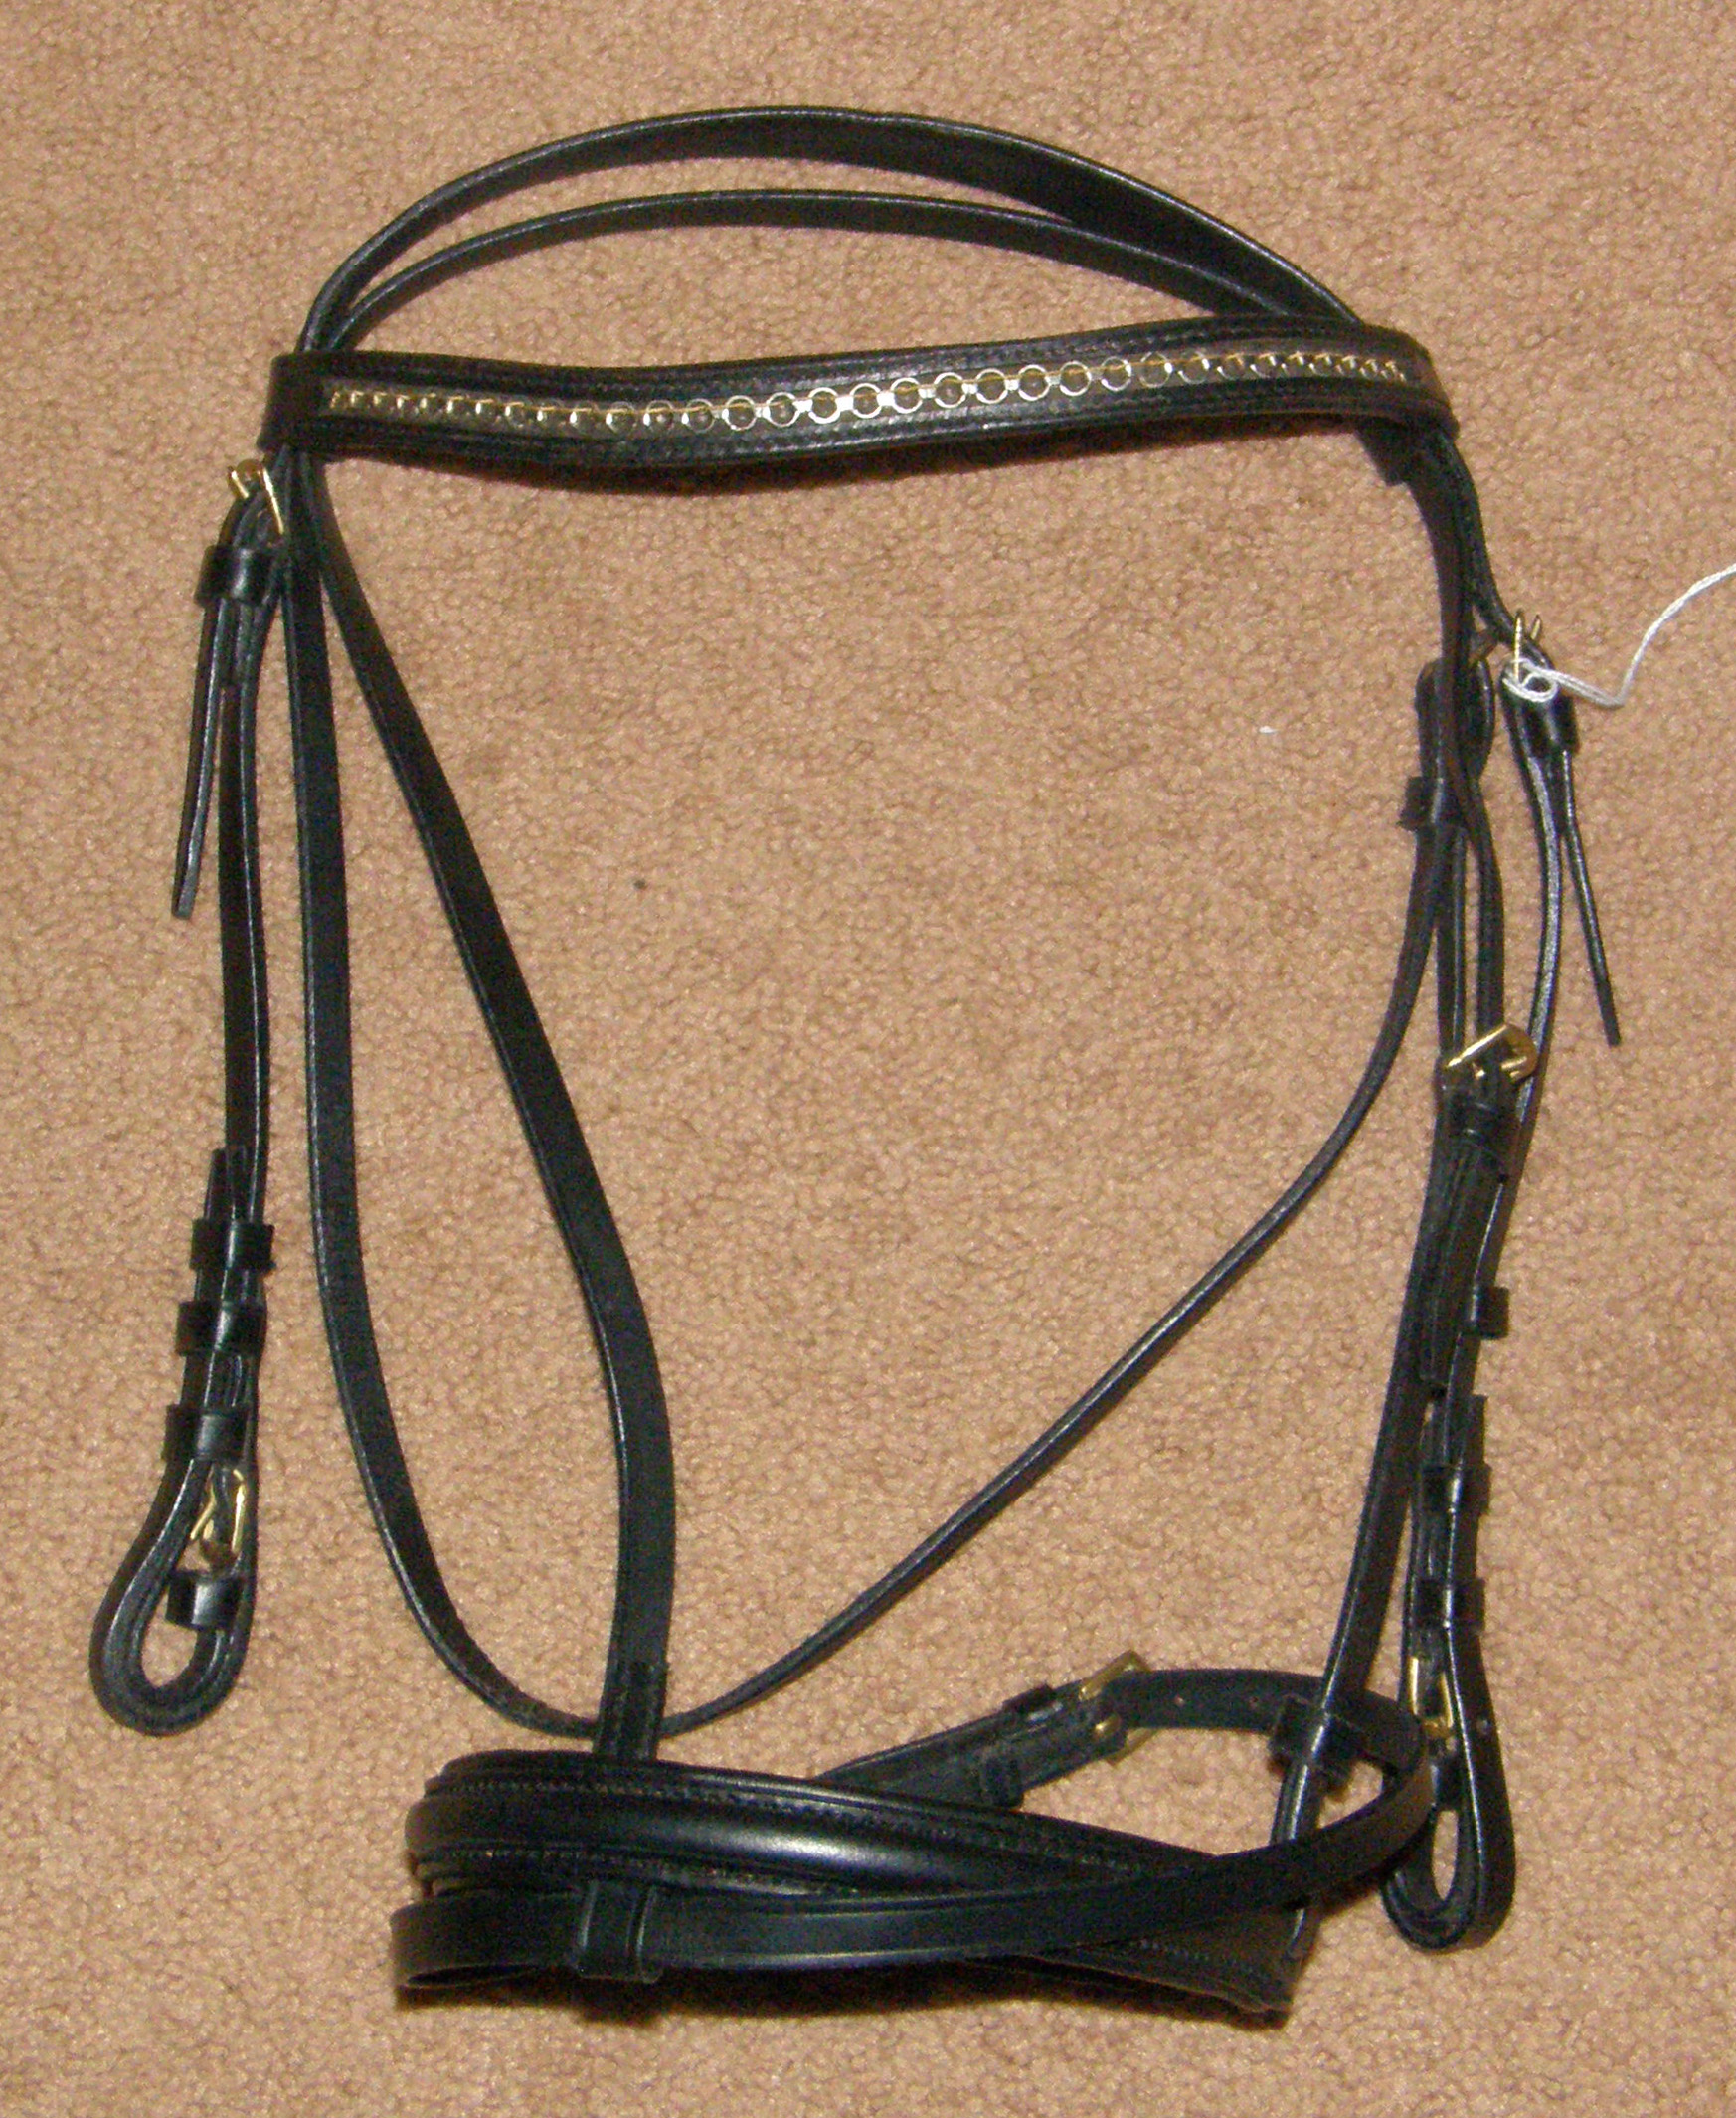 Schou Equestrian Round Raised English Headstall Brass Clincher Bridle with Flash Attachment English Snaffle Bridle Black Dressage Bridle Pony Cob